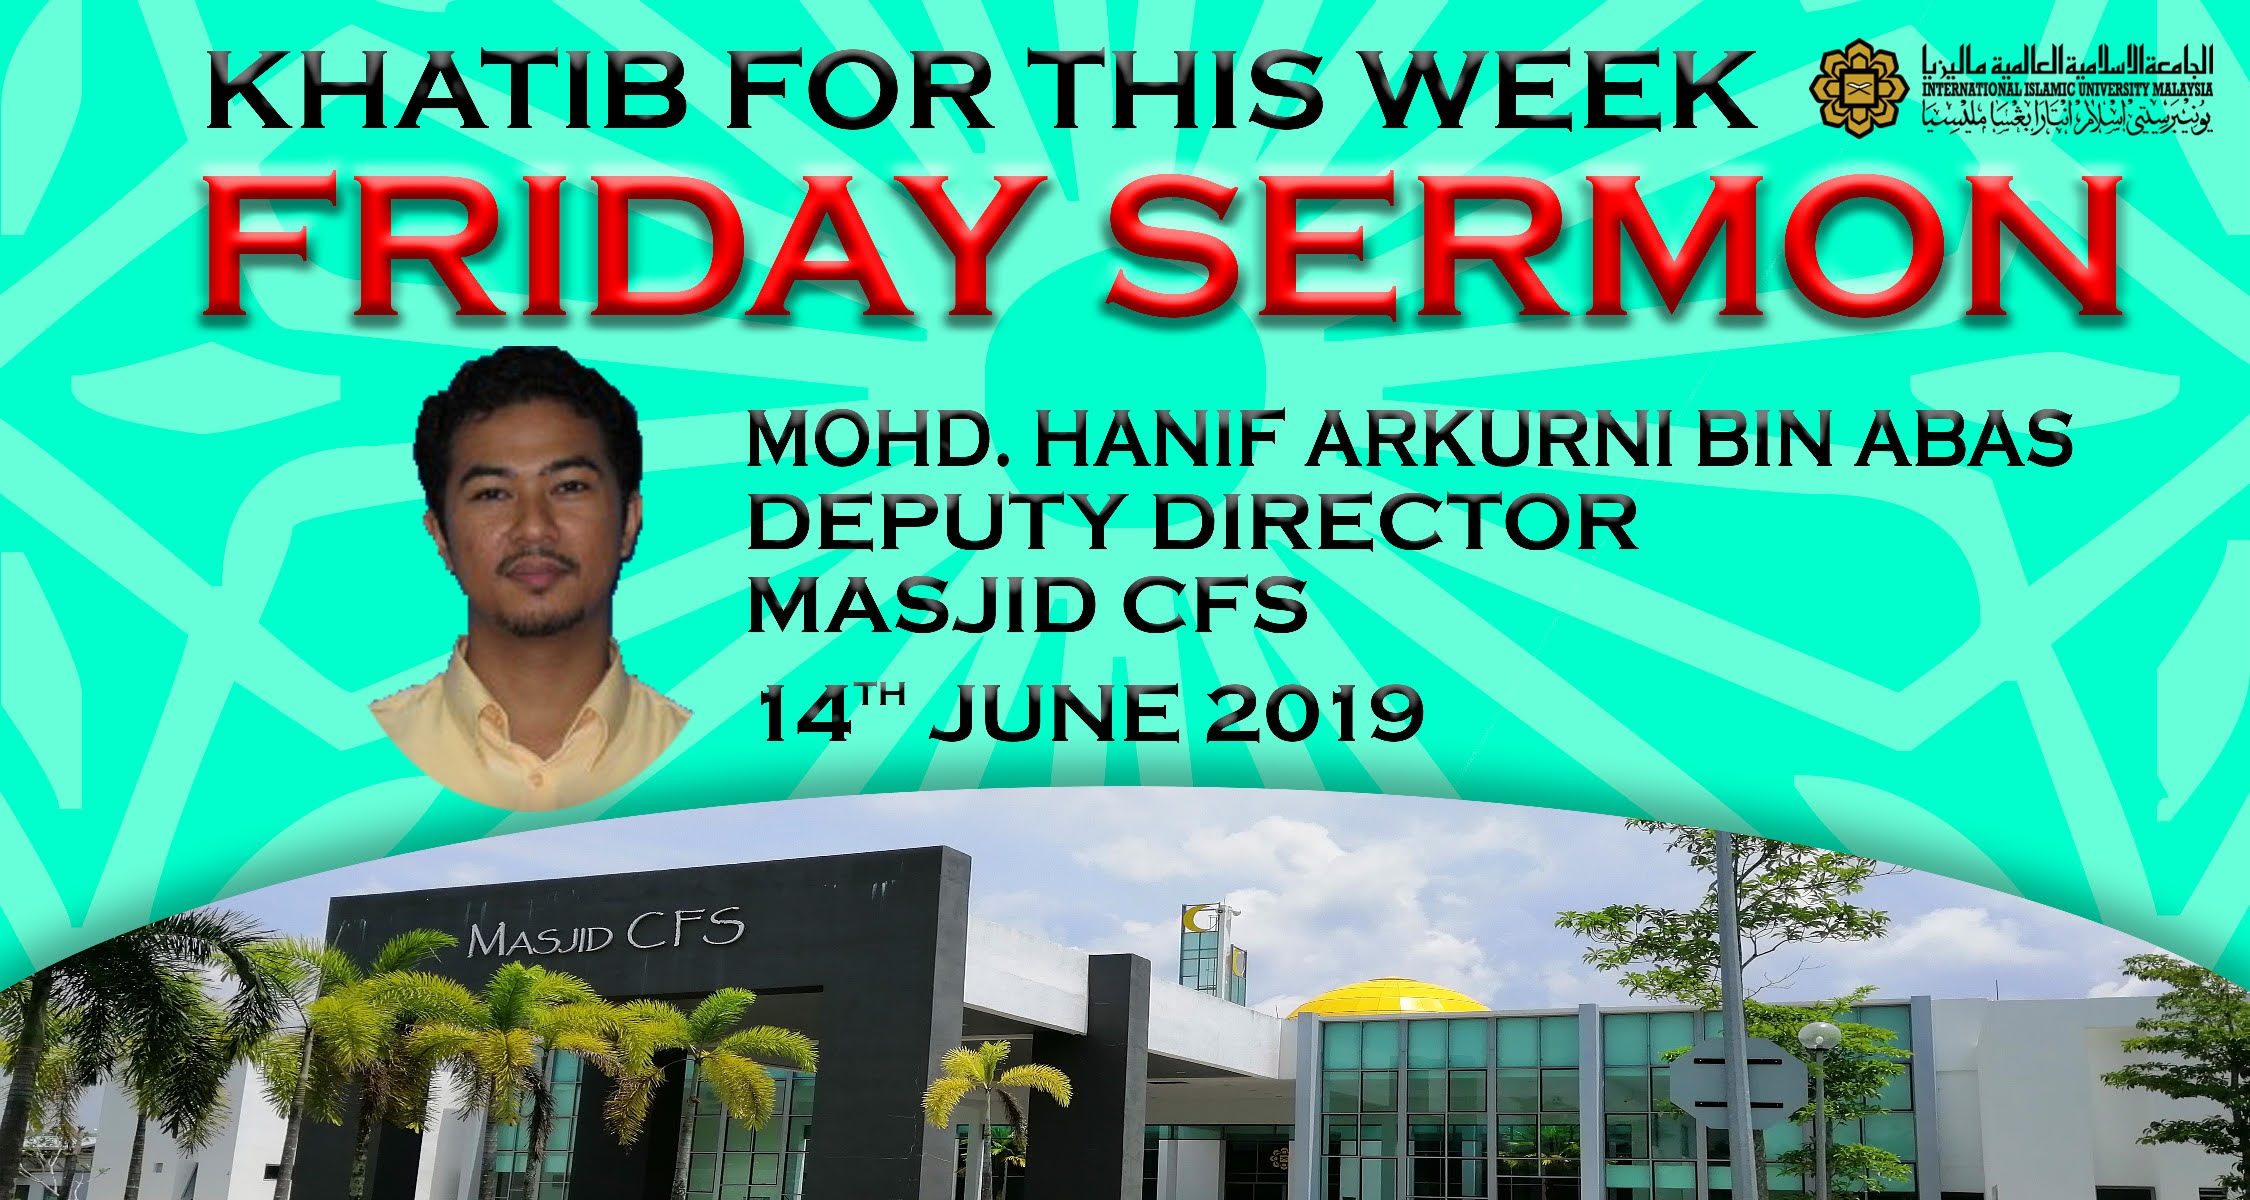 First Friday Prayer at Masjid CFS